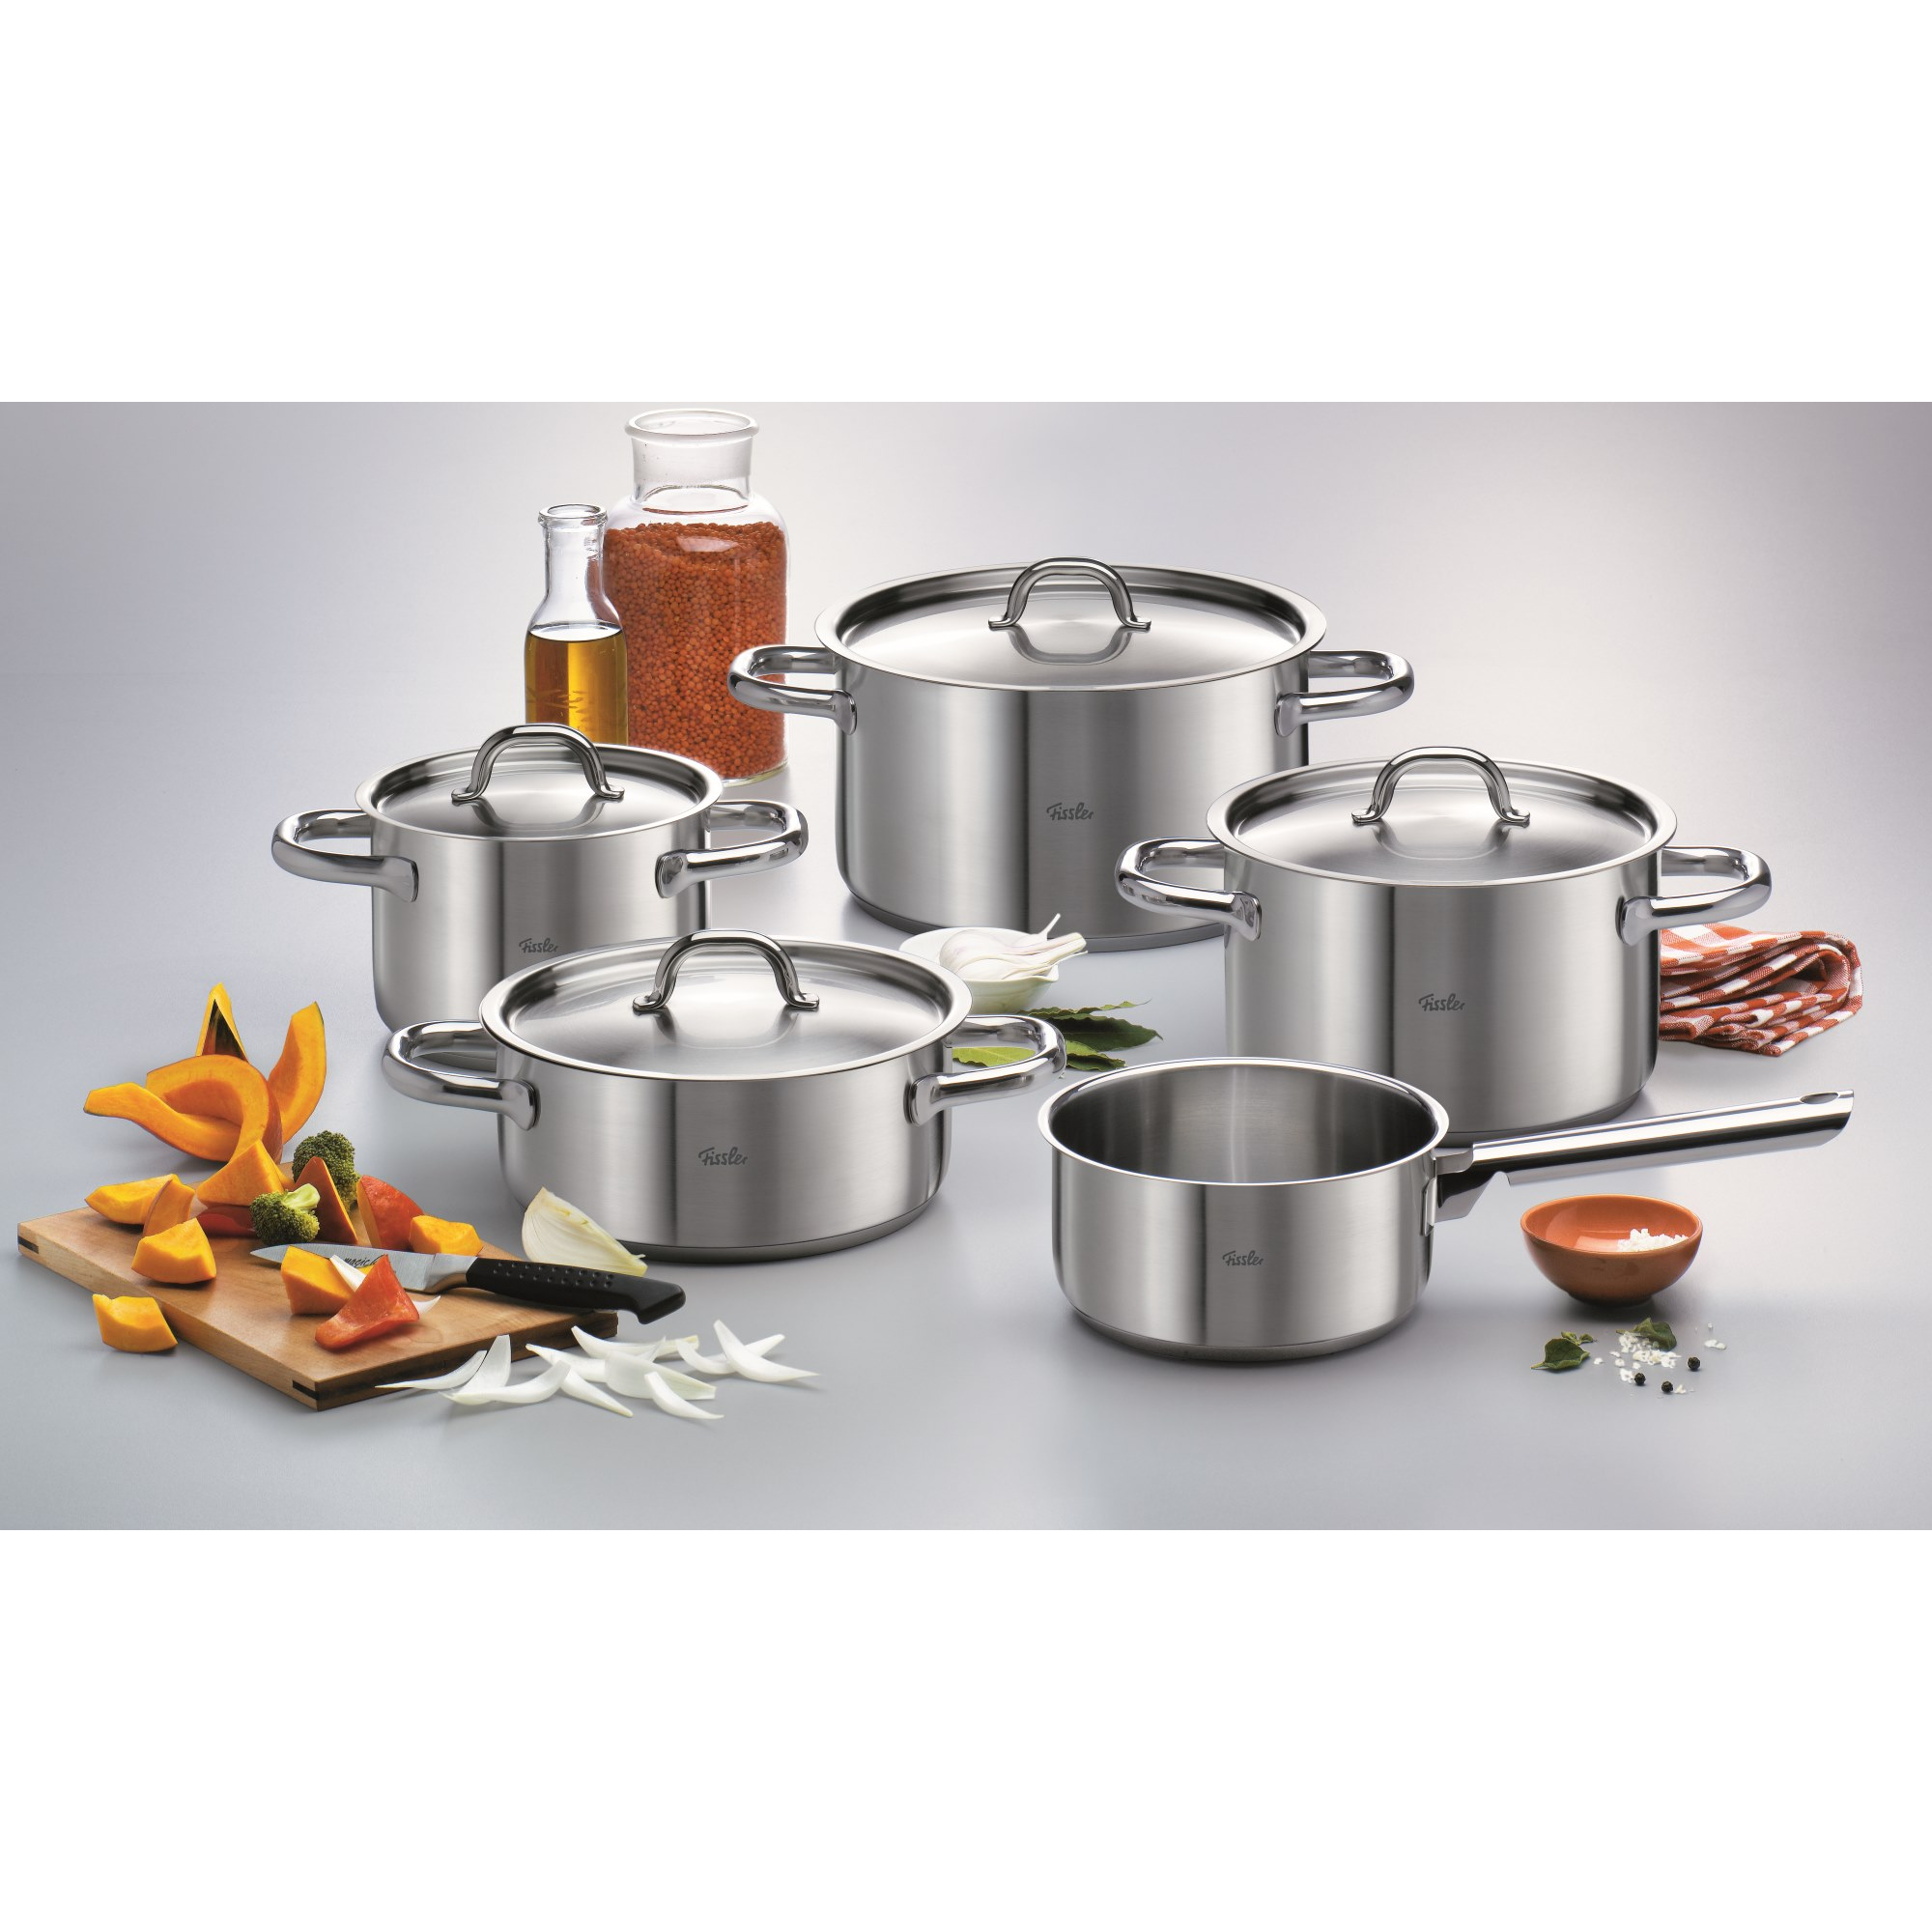 fissler serie family line topfset 5 teilig mit metalldeckeln topfsets kochen kochen. Black Bedroom Furniture Sets. Home Design Ideas